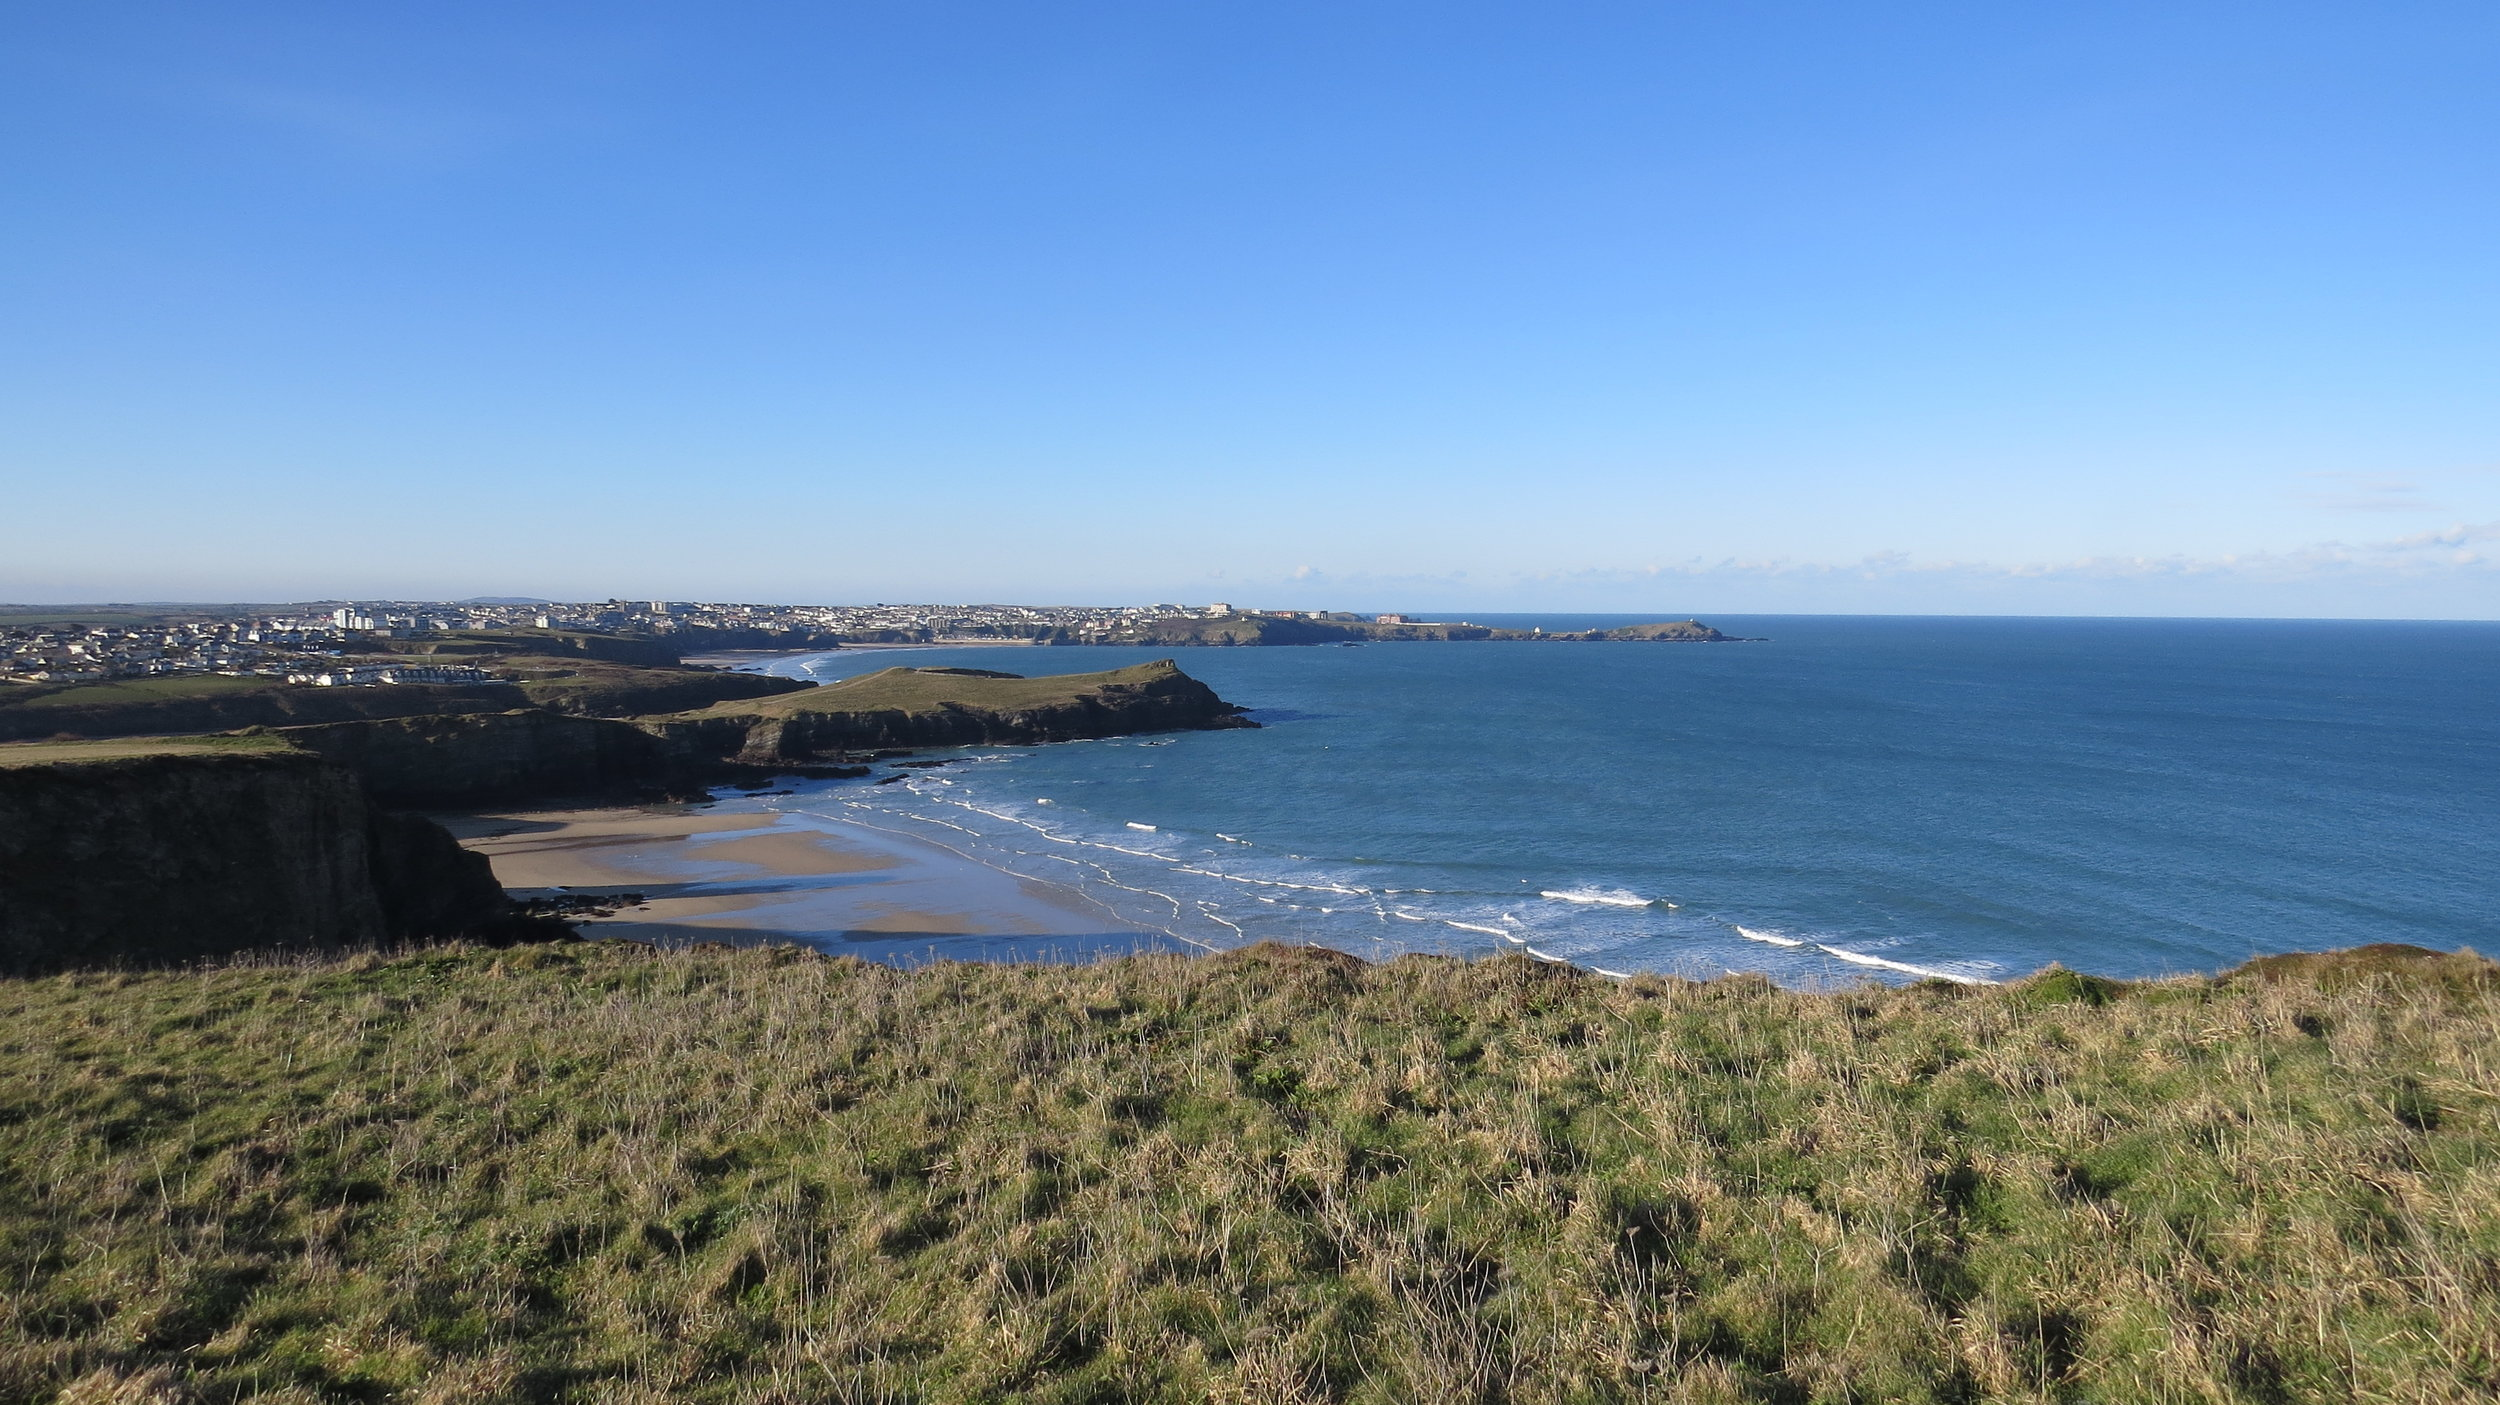 Looking back to Newquay